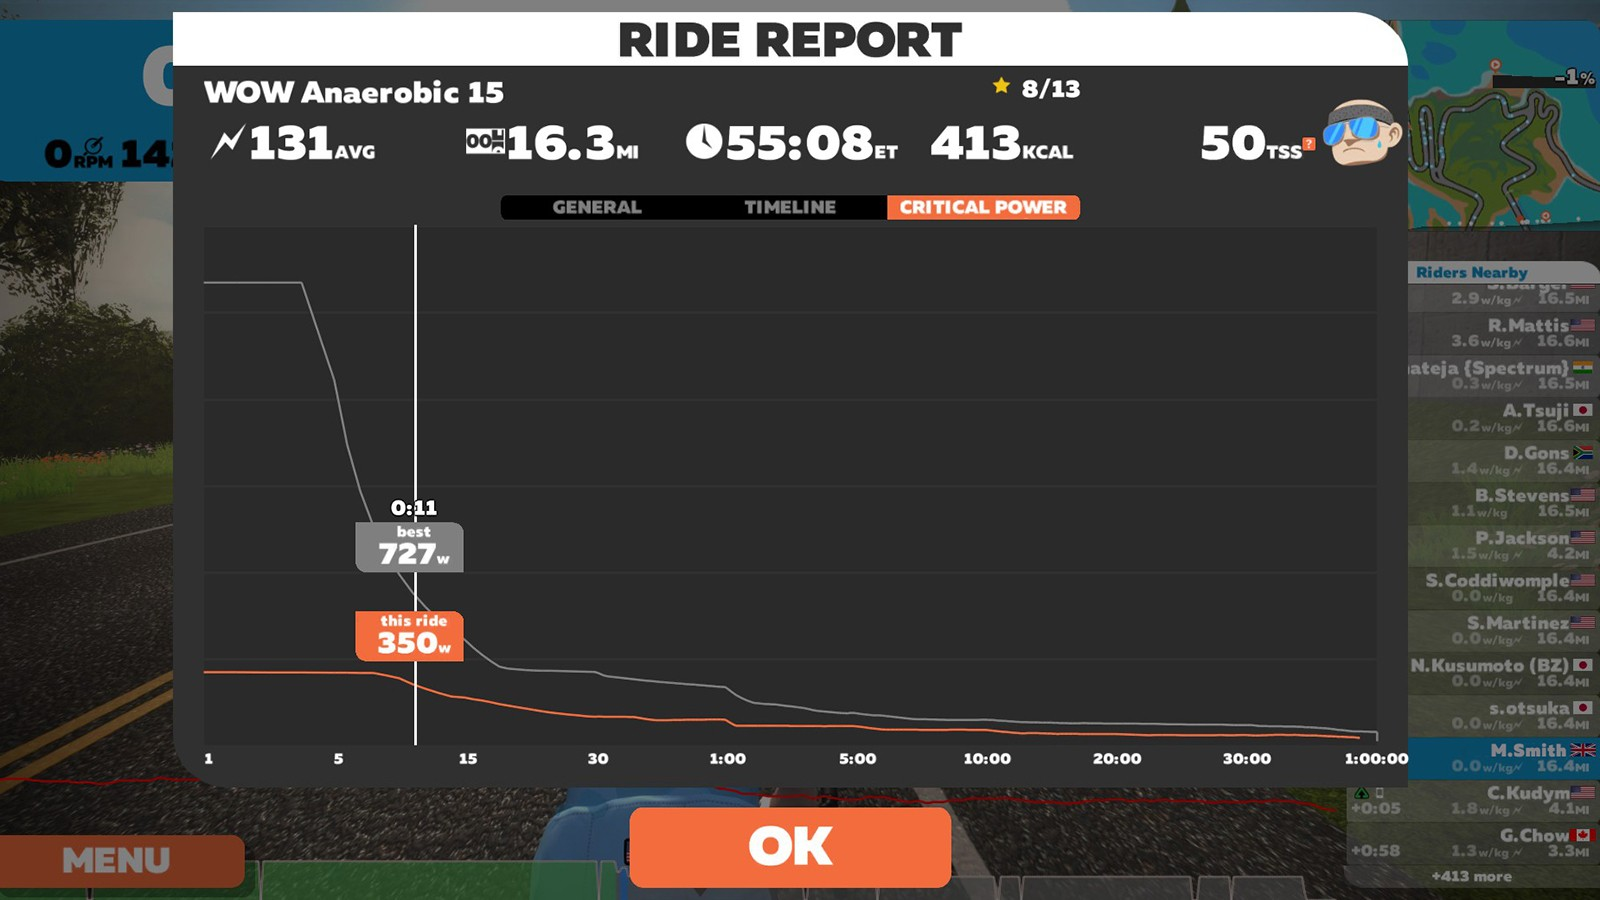 You can use a third party app to view your data or download the .fit file from Zwift